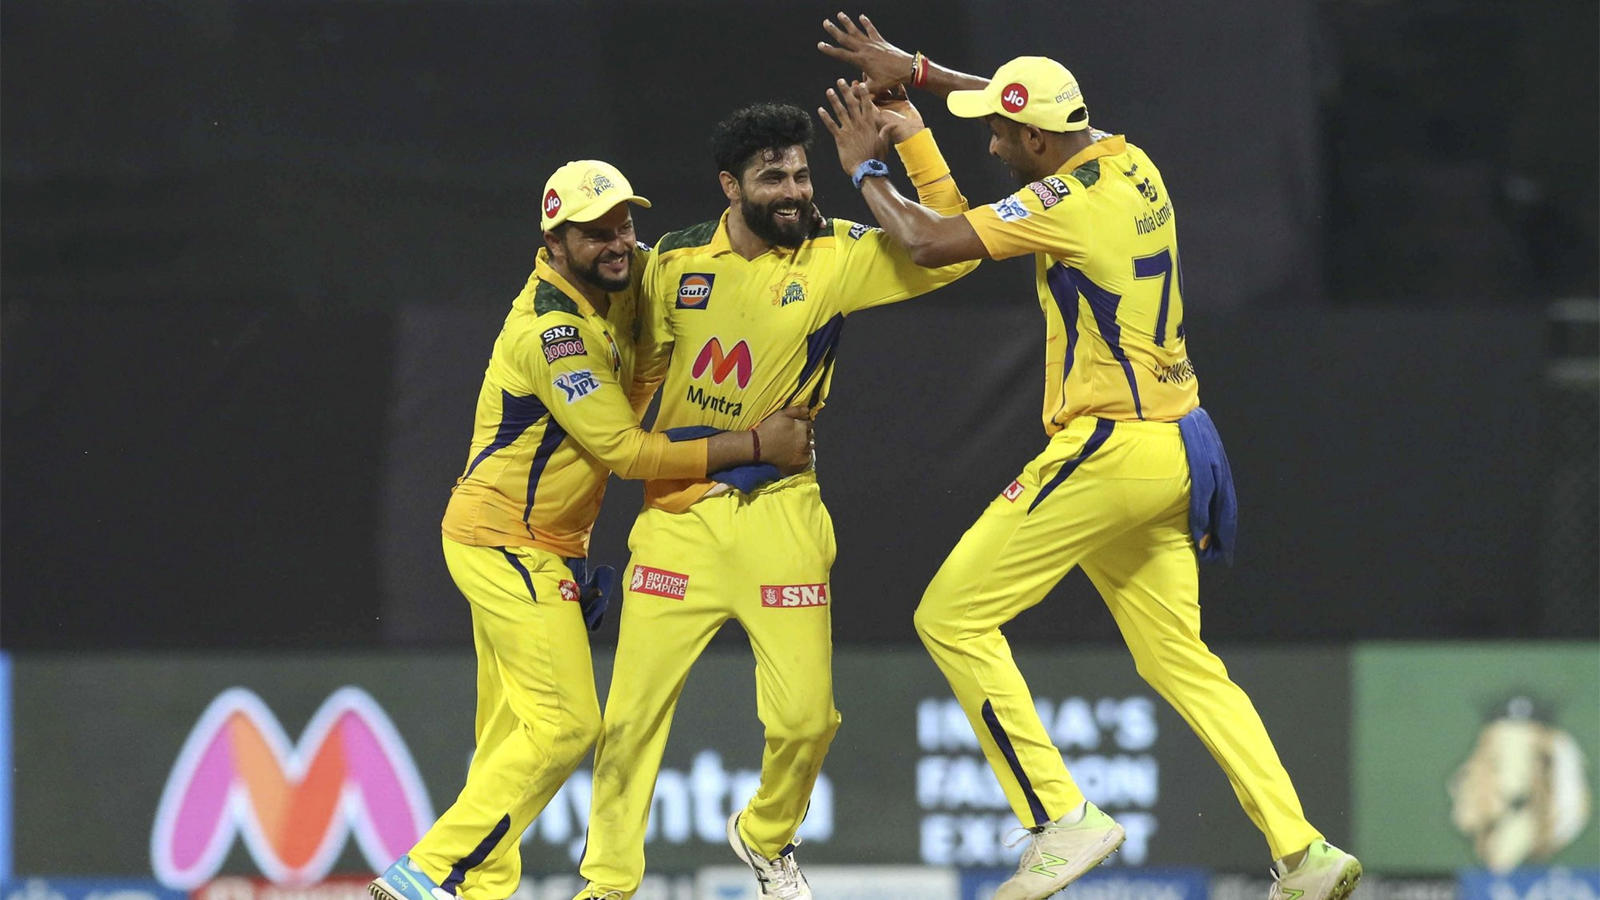 ipl-2021-chennai-super-kings-beat-rajasthan-royals-by-45-runs